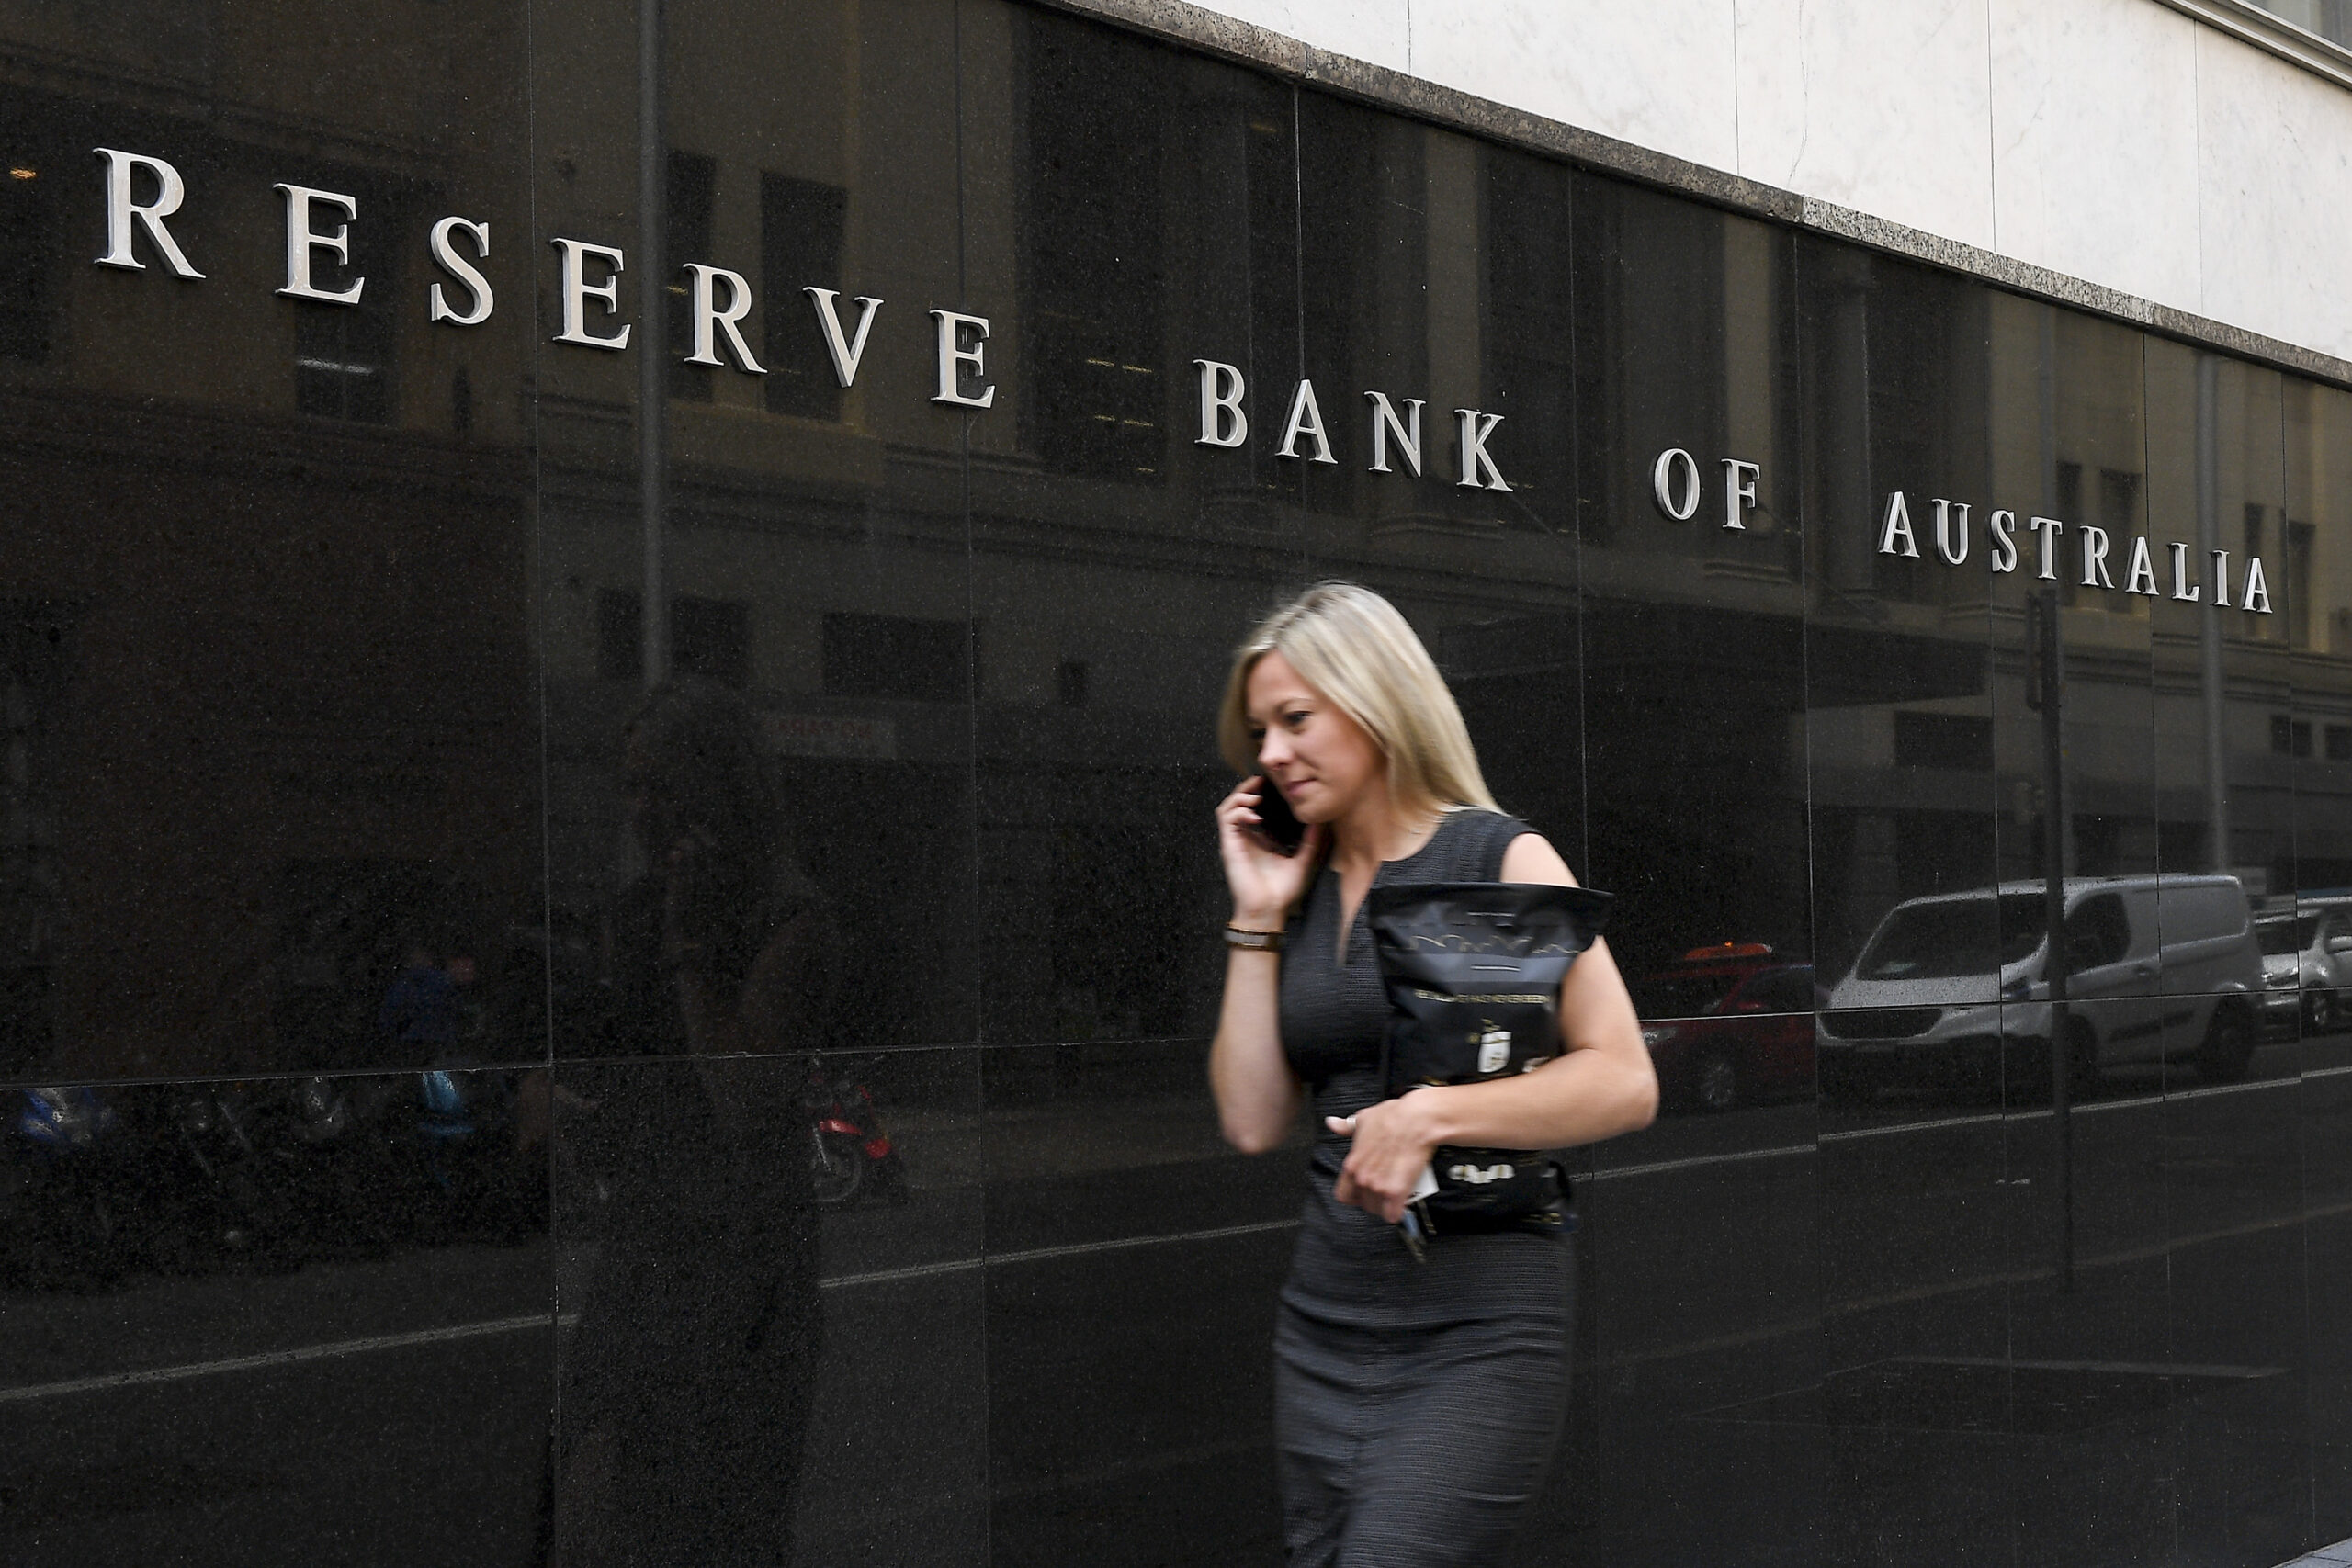 Indebtedness Will Change Reserve Bank Of Australia's Goals, Says Study